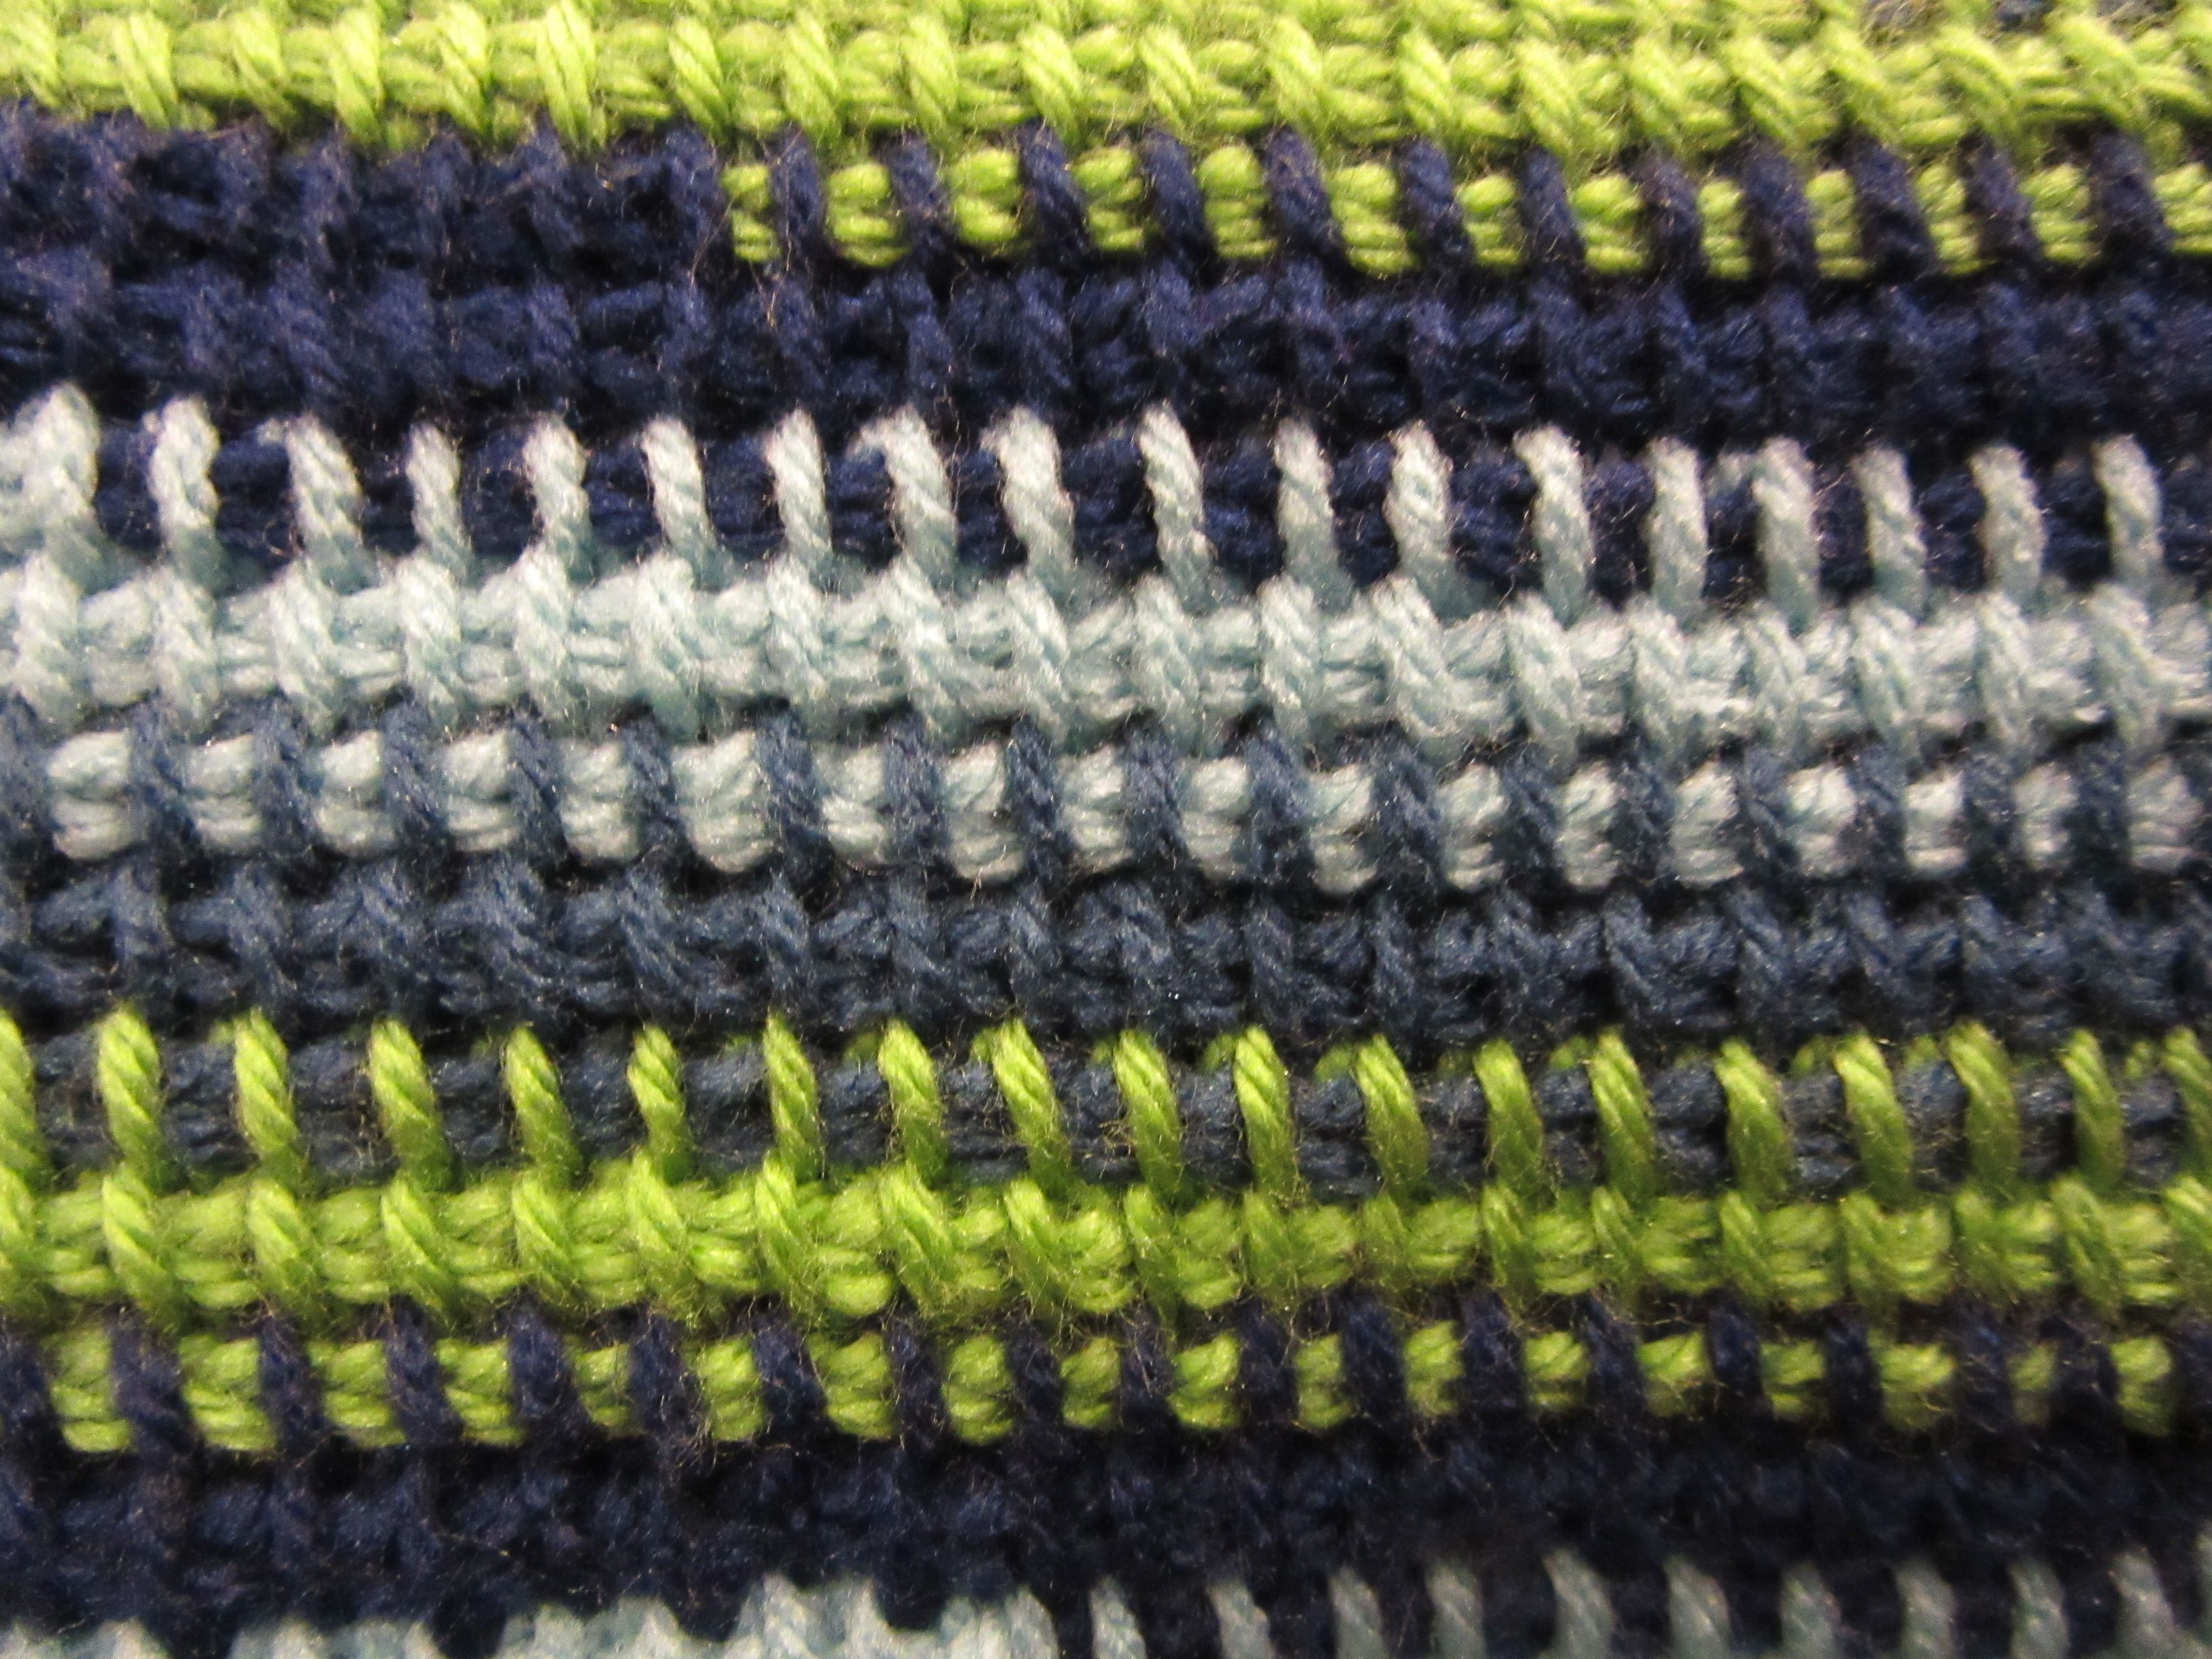 Crocheted Afghan Stitch Pattern in Multiple Colors Close-up